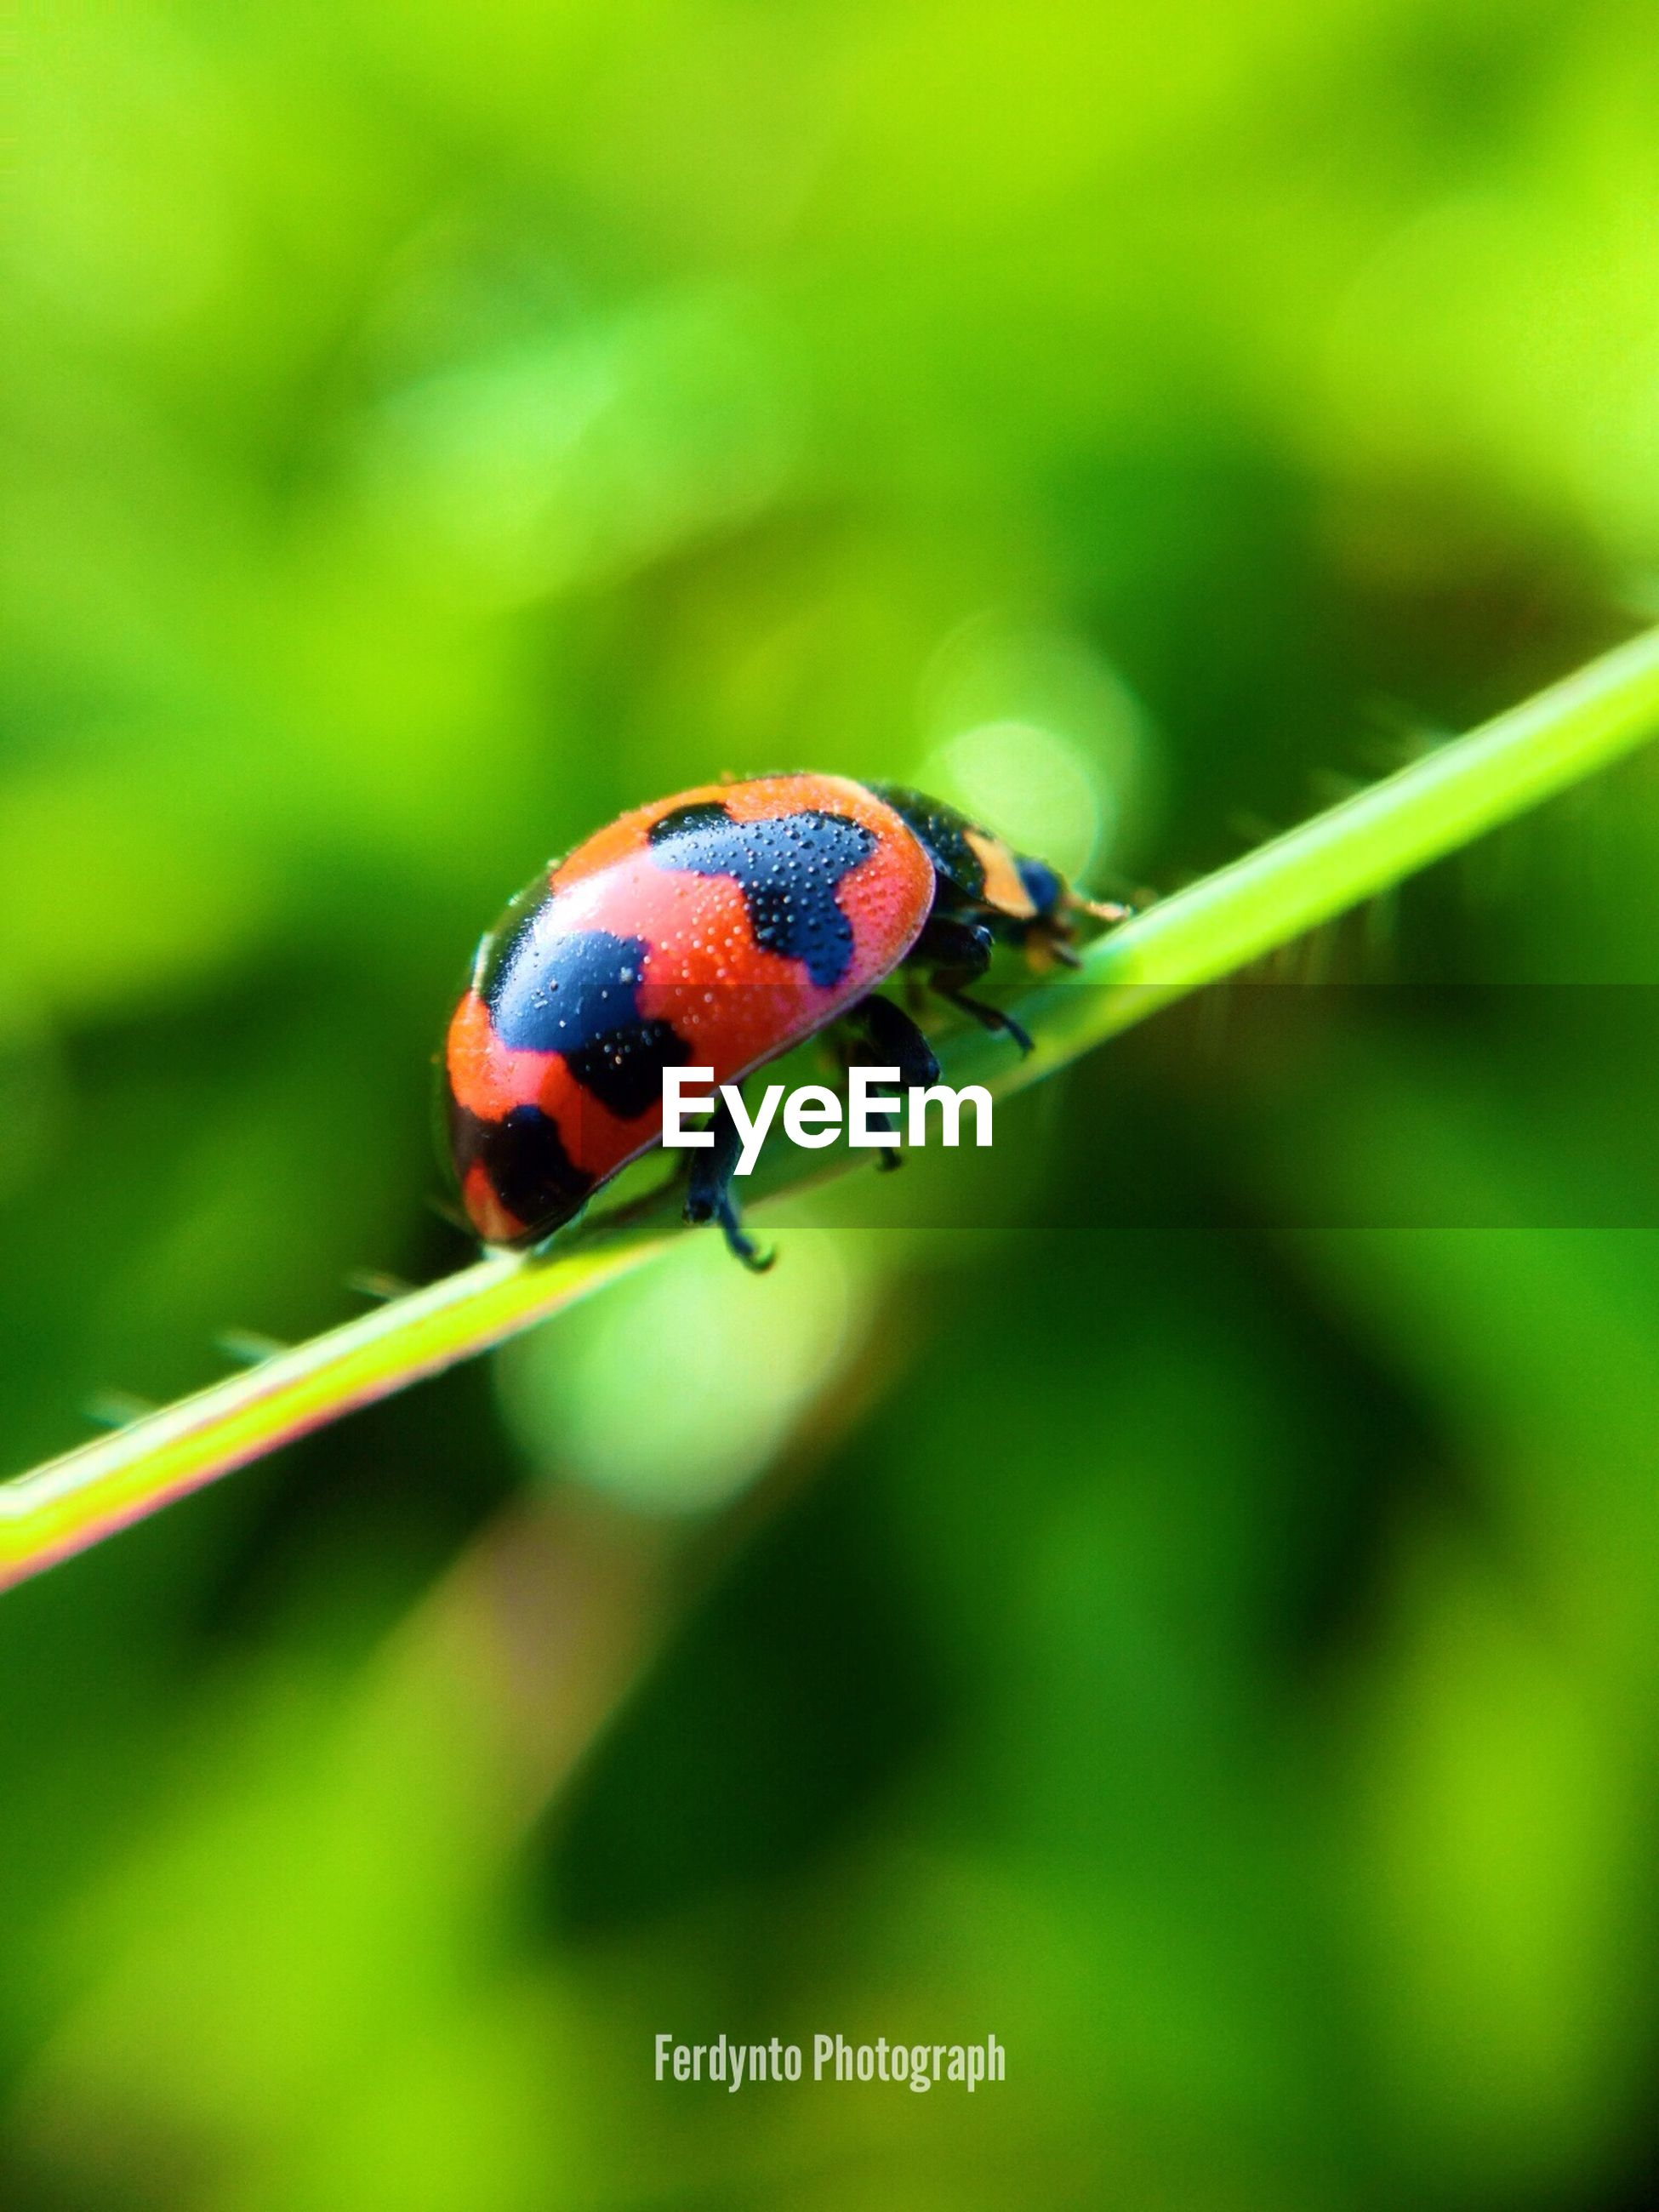 animal themes, one animal, animals in the wild, insect, wildlife, focus on foreground, close-up, ladybug, green color, red, selective focus, nature, leaf, day, plant, outdoors, no people, beauty in nature, full length, spotted